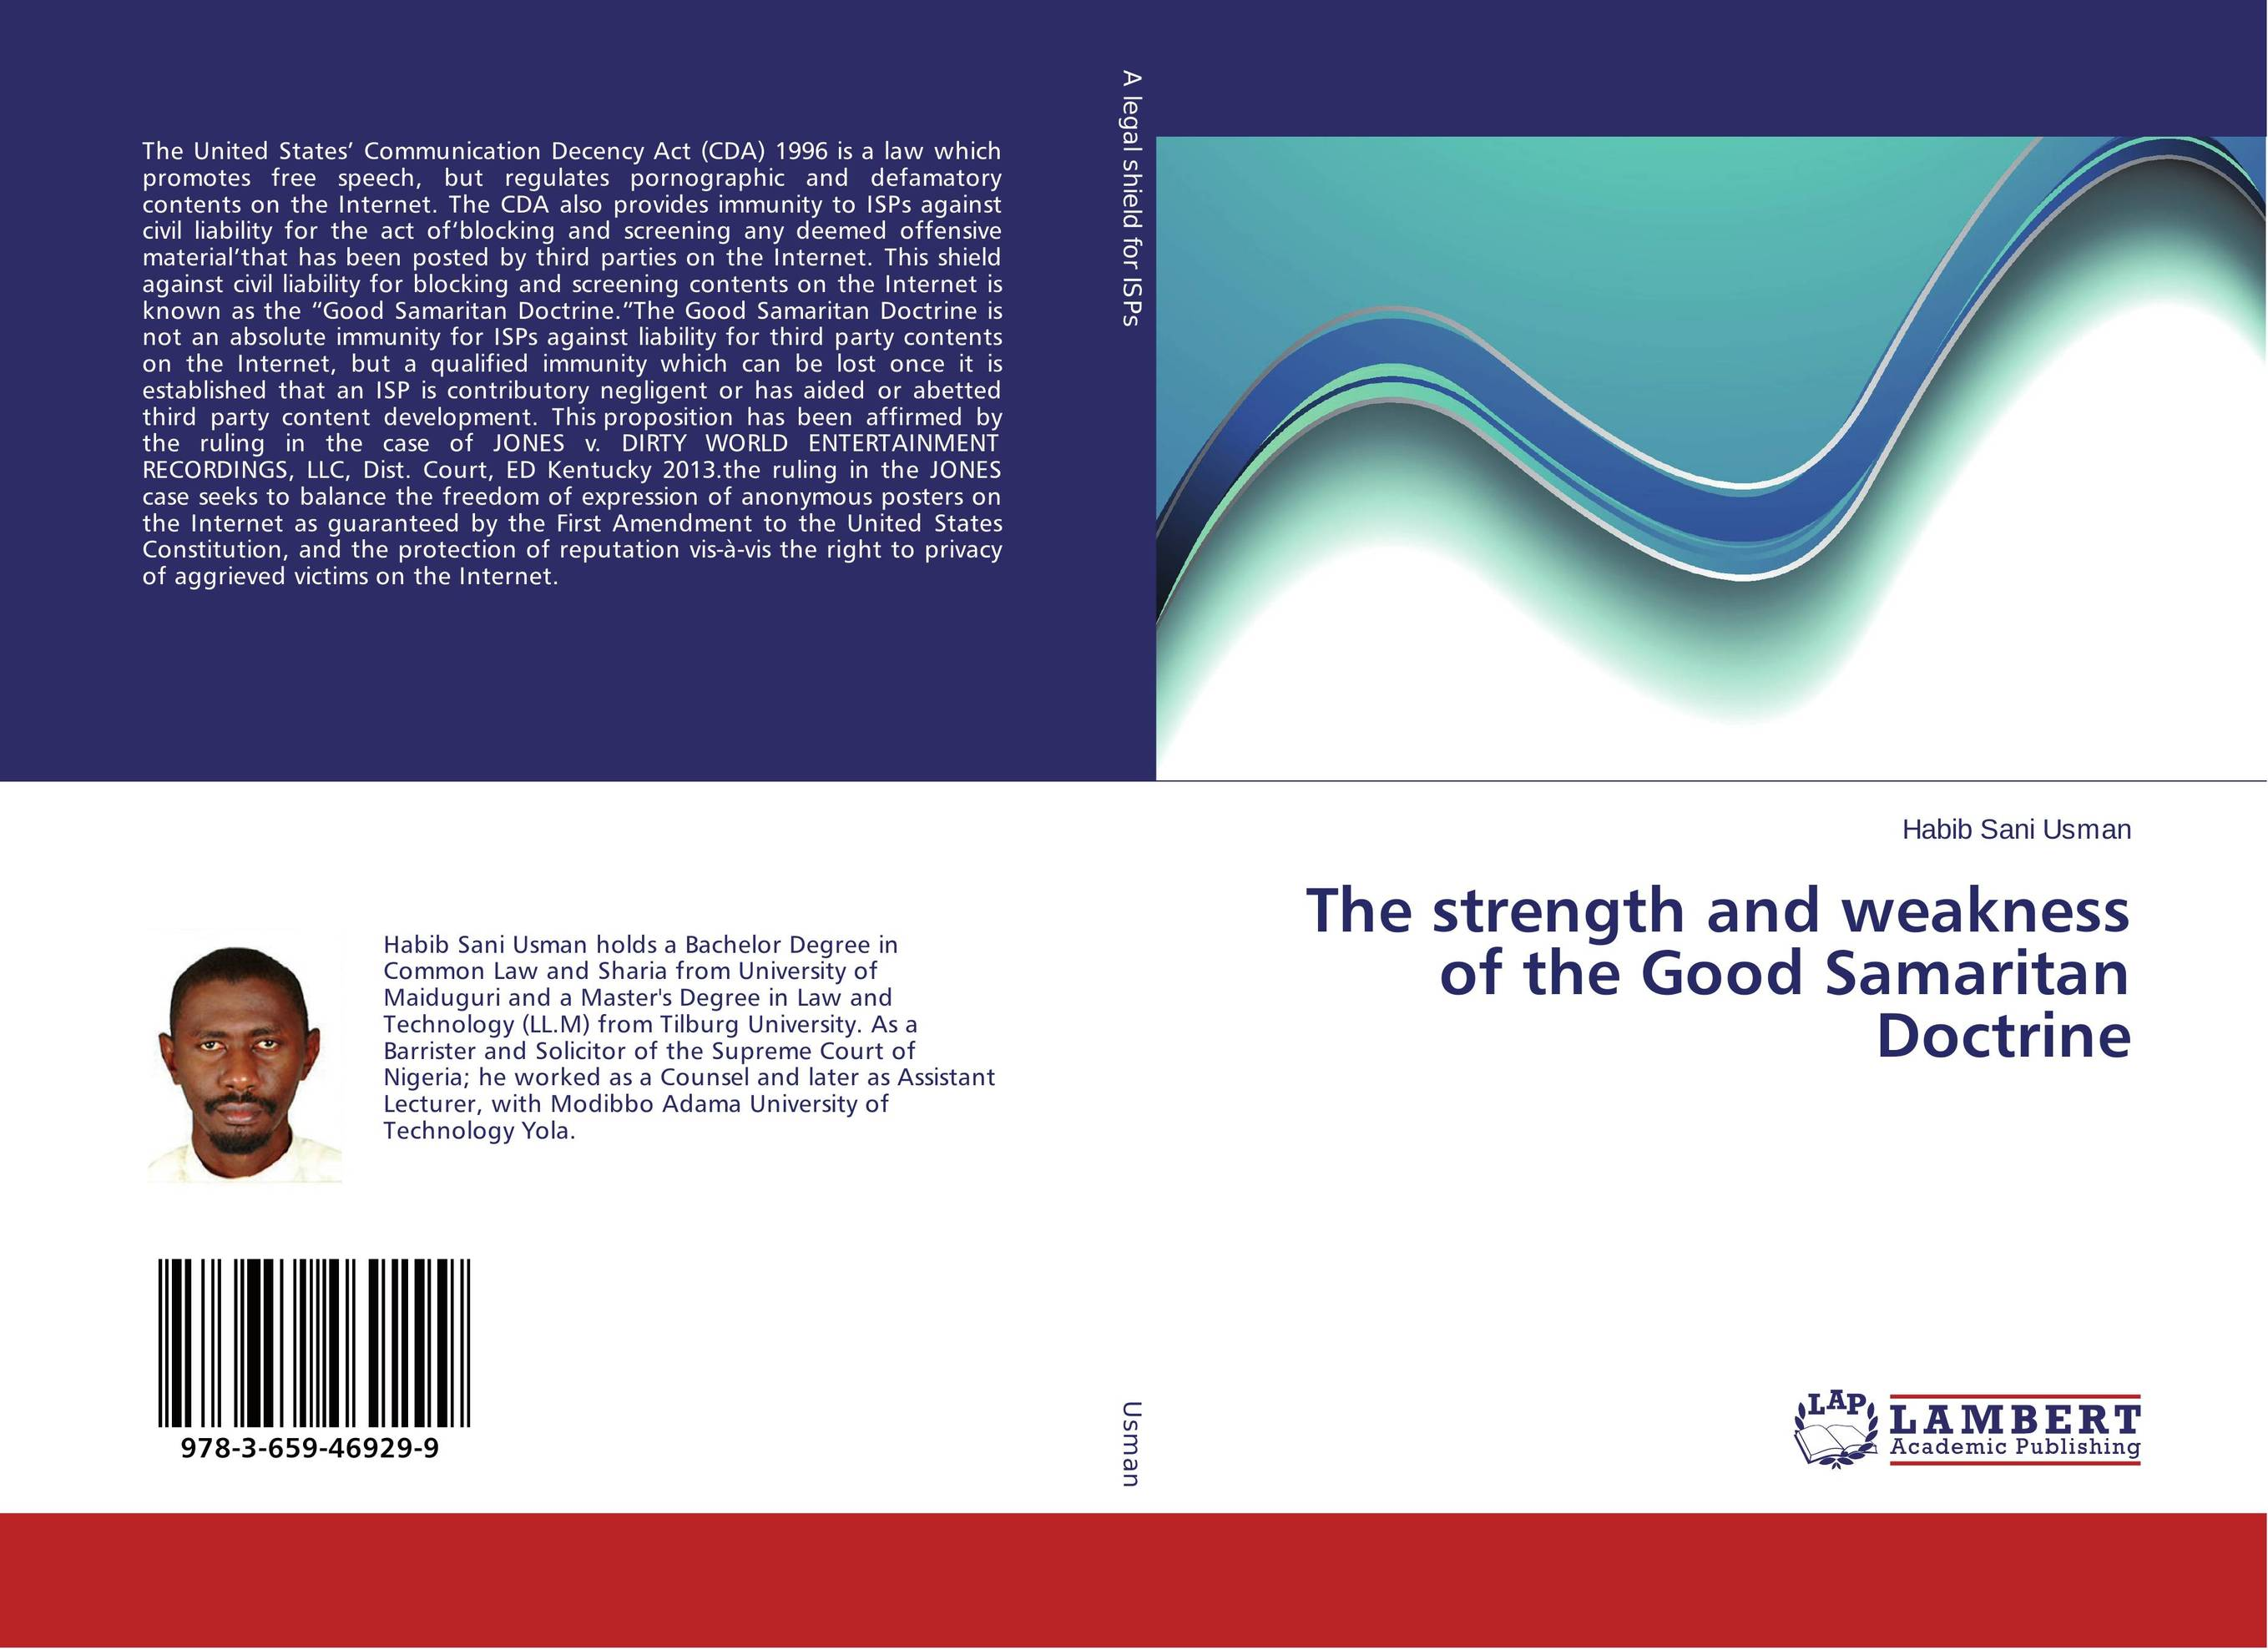 The strength and weakness of the Good Samaritan Doctrine russound isps